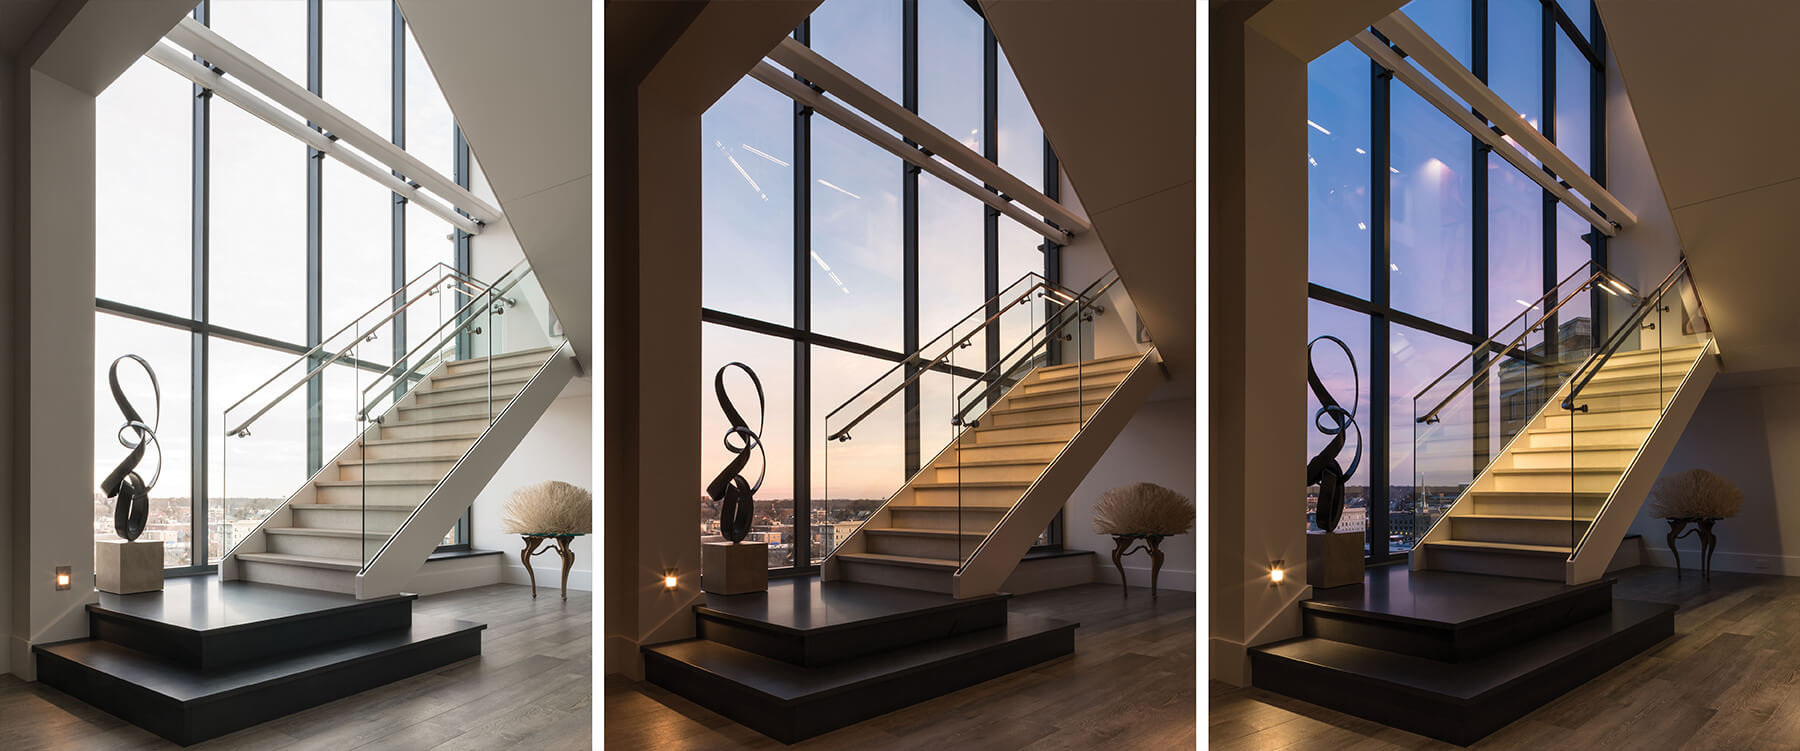 Stair at urban penthouse